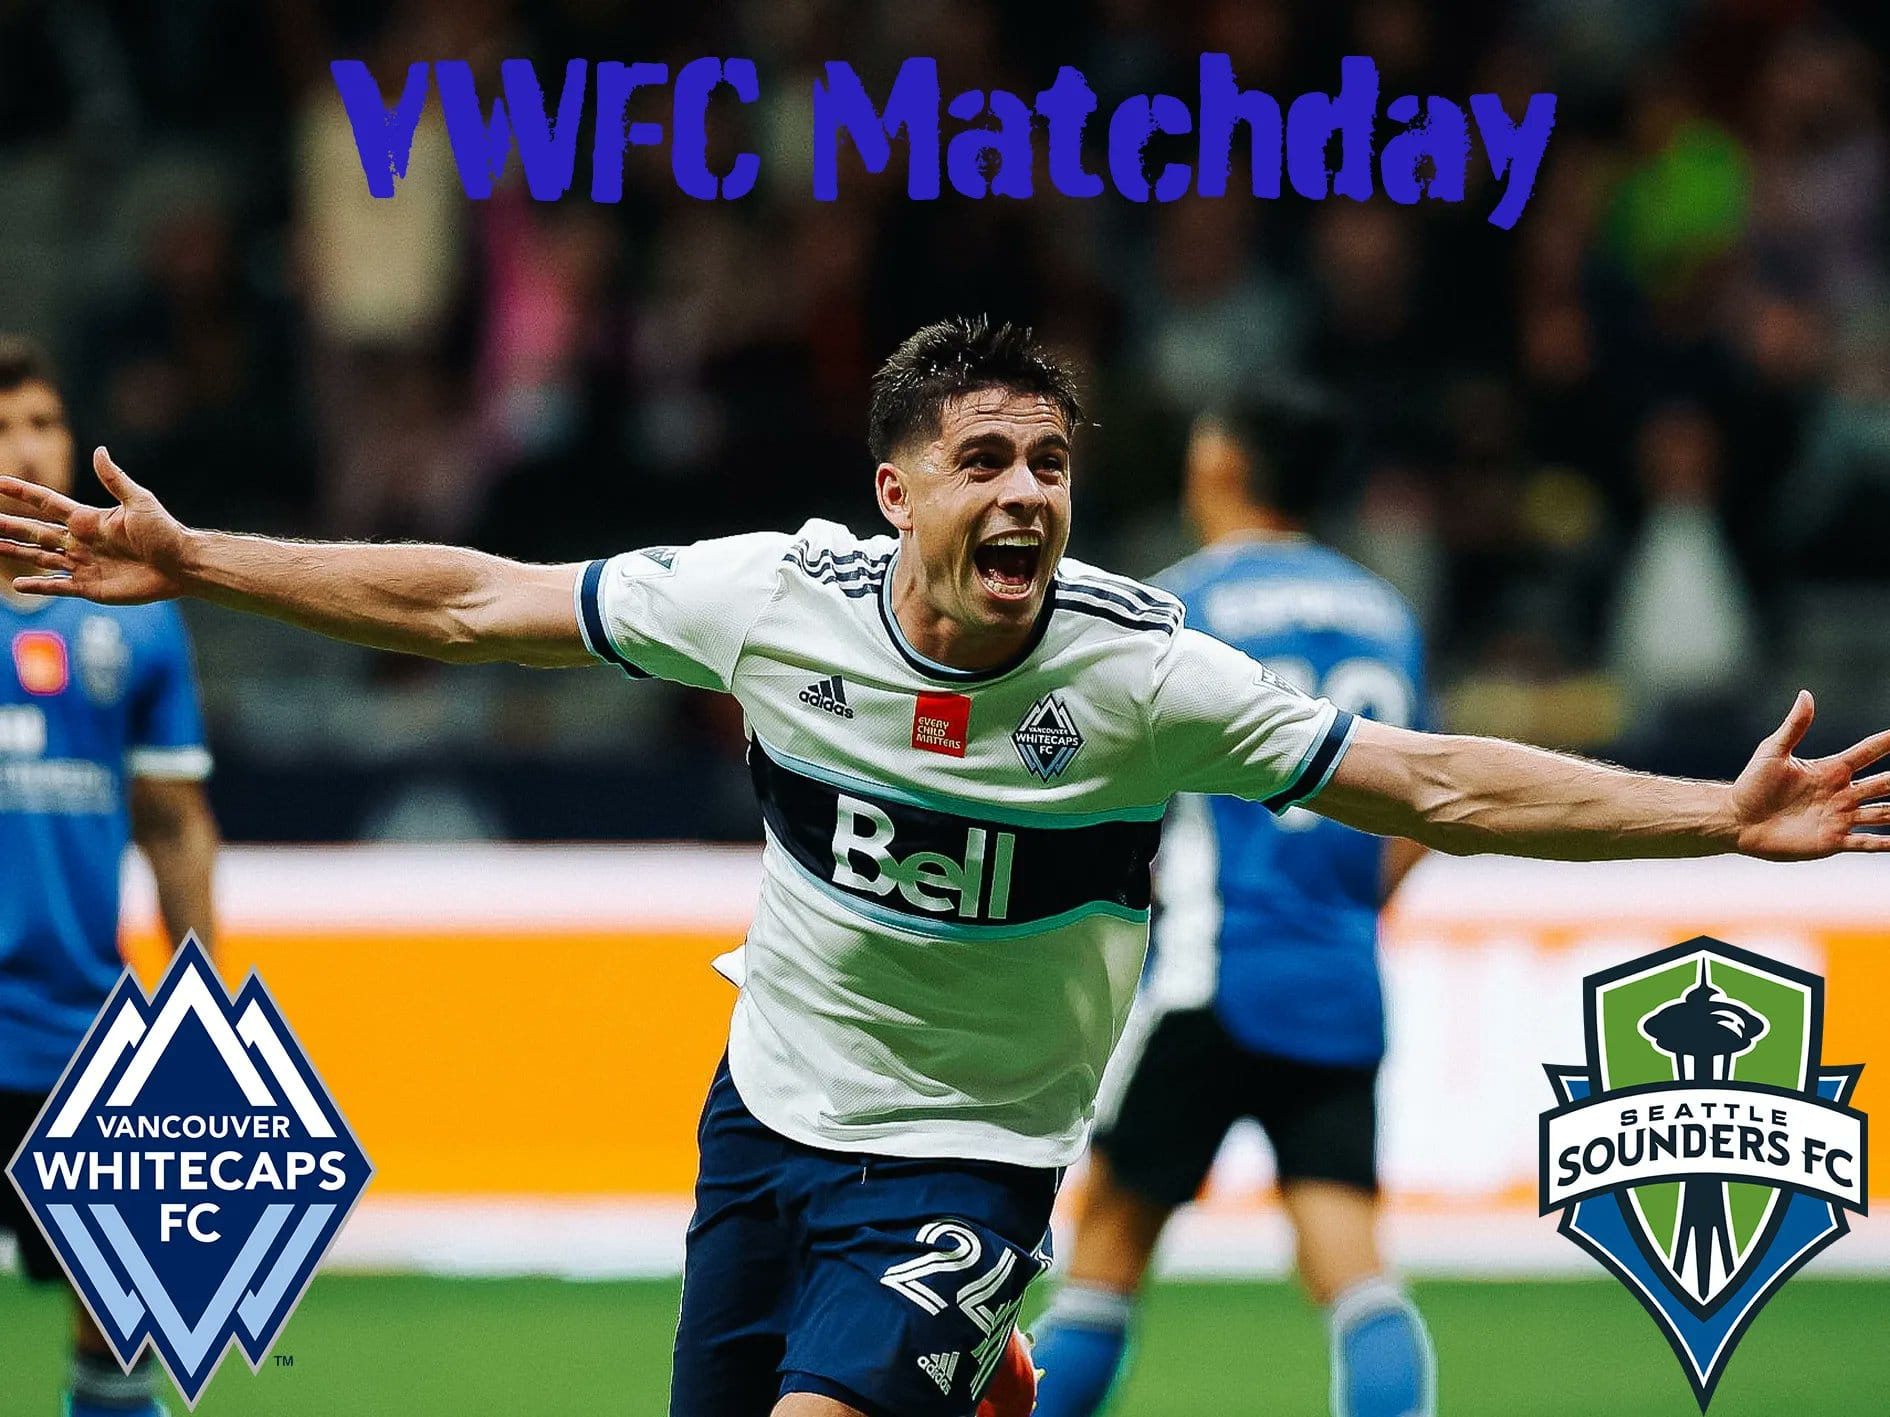 Whitecaps at Sounders preview 2